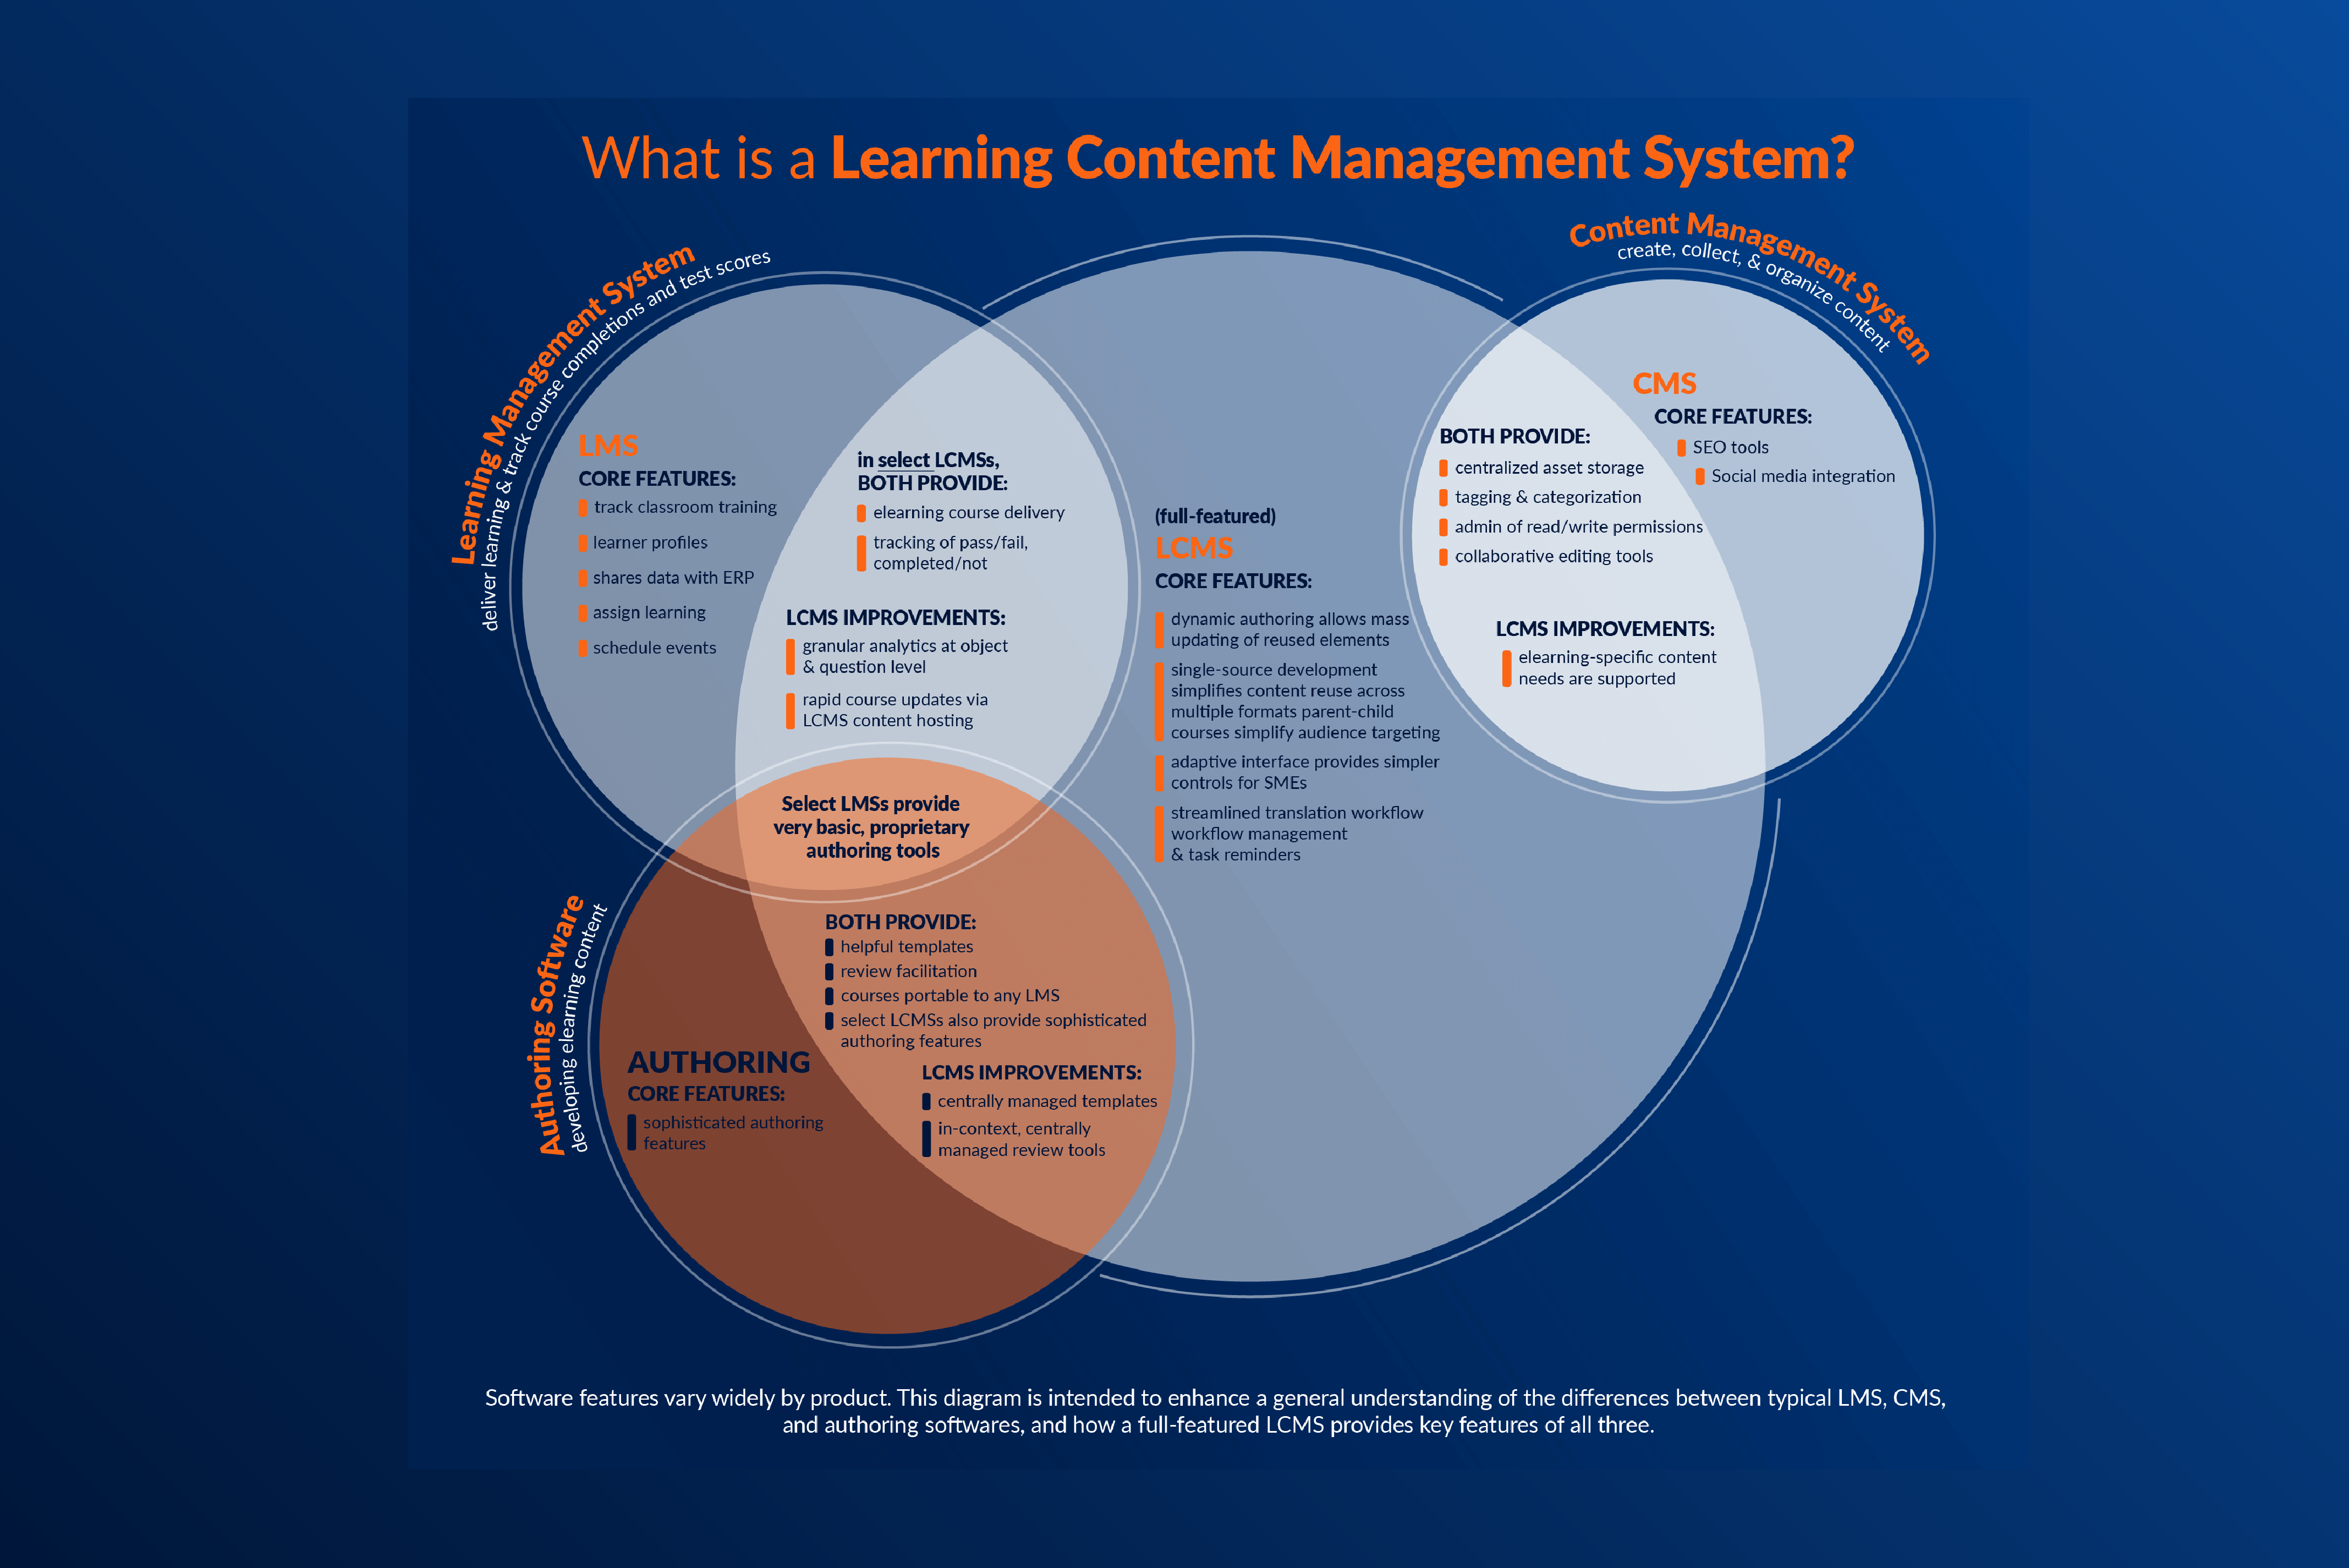 A venn diagram to outline the differences between an LCMS and other learning tools, such as an LMS.